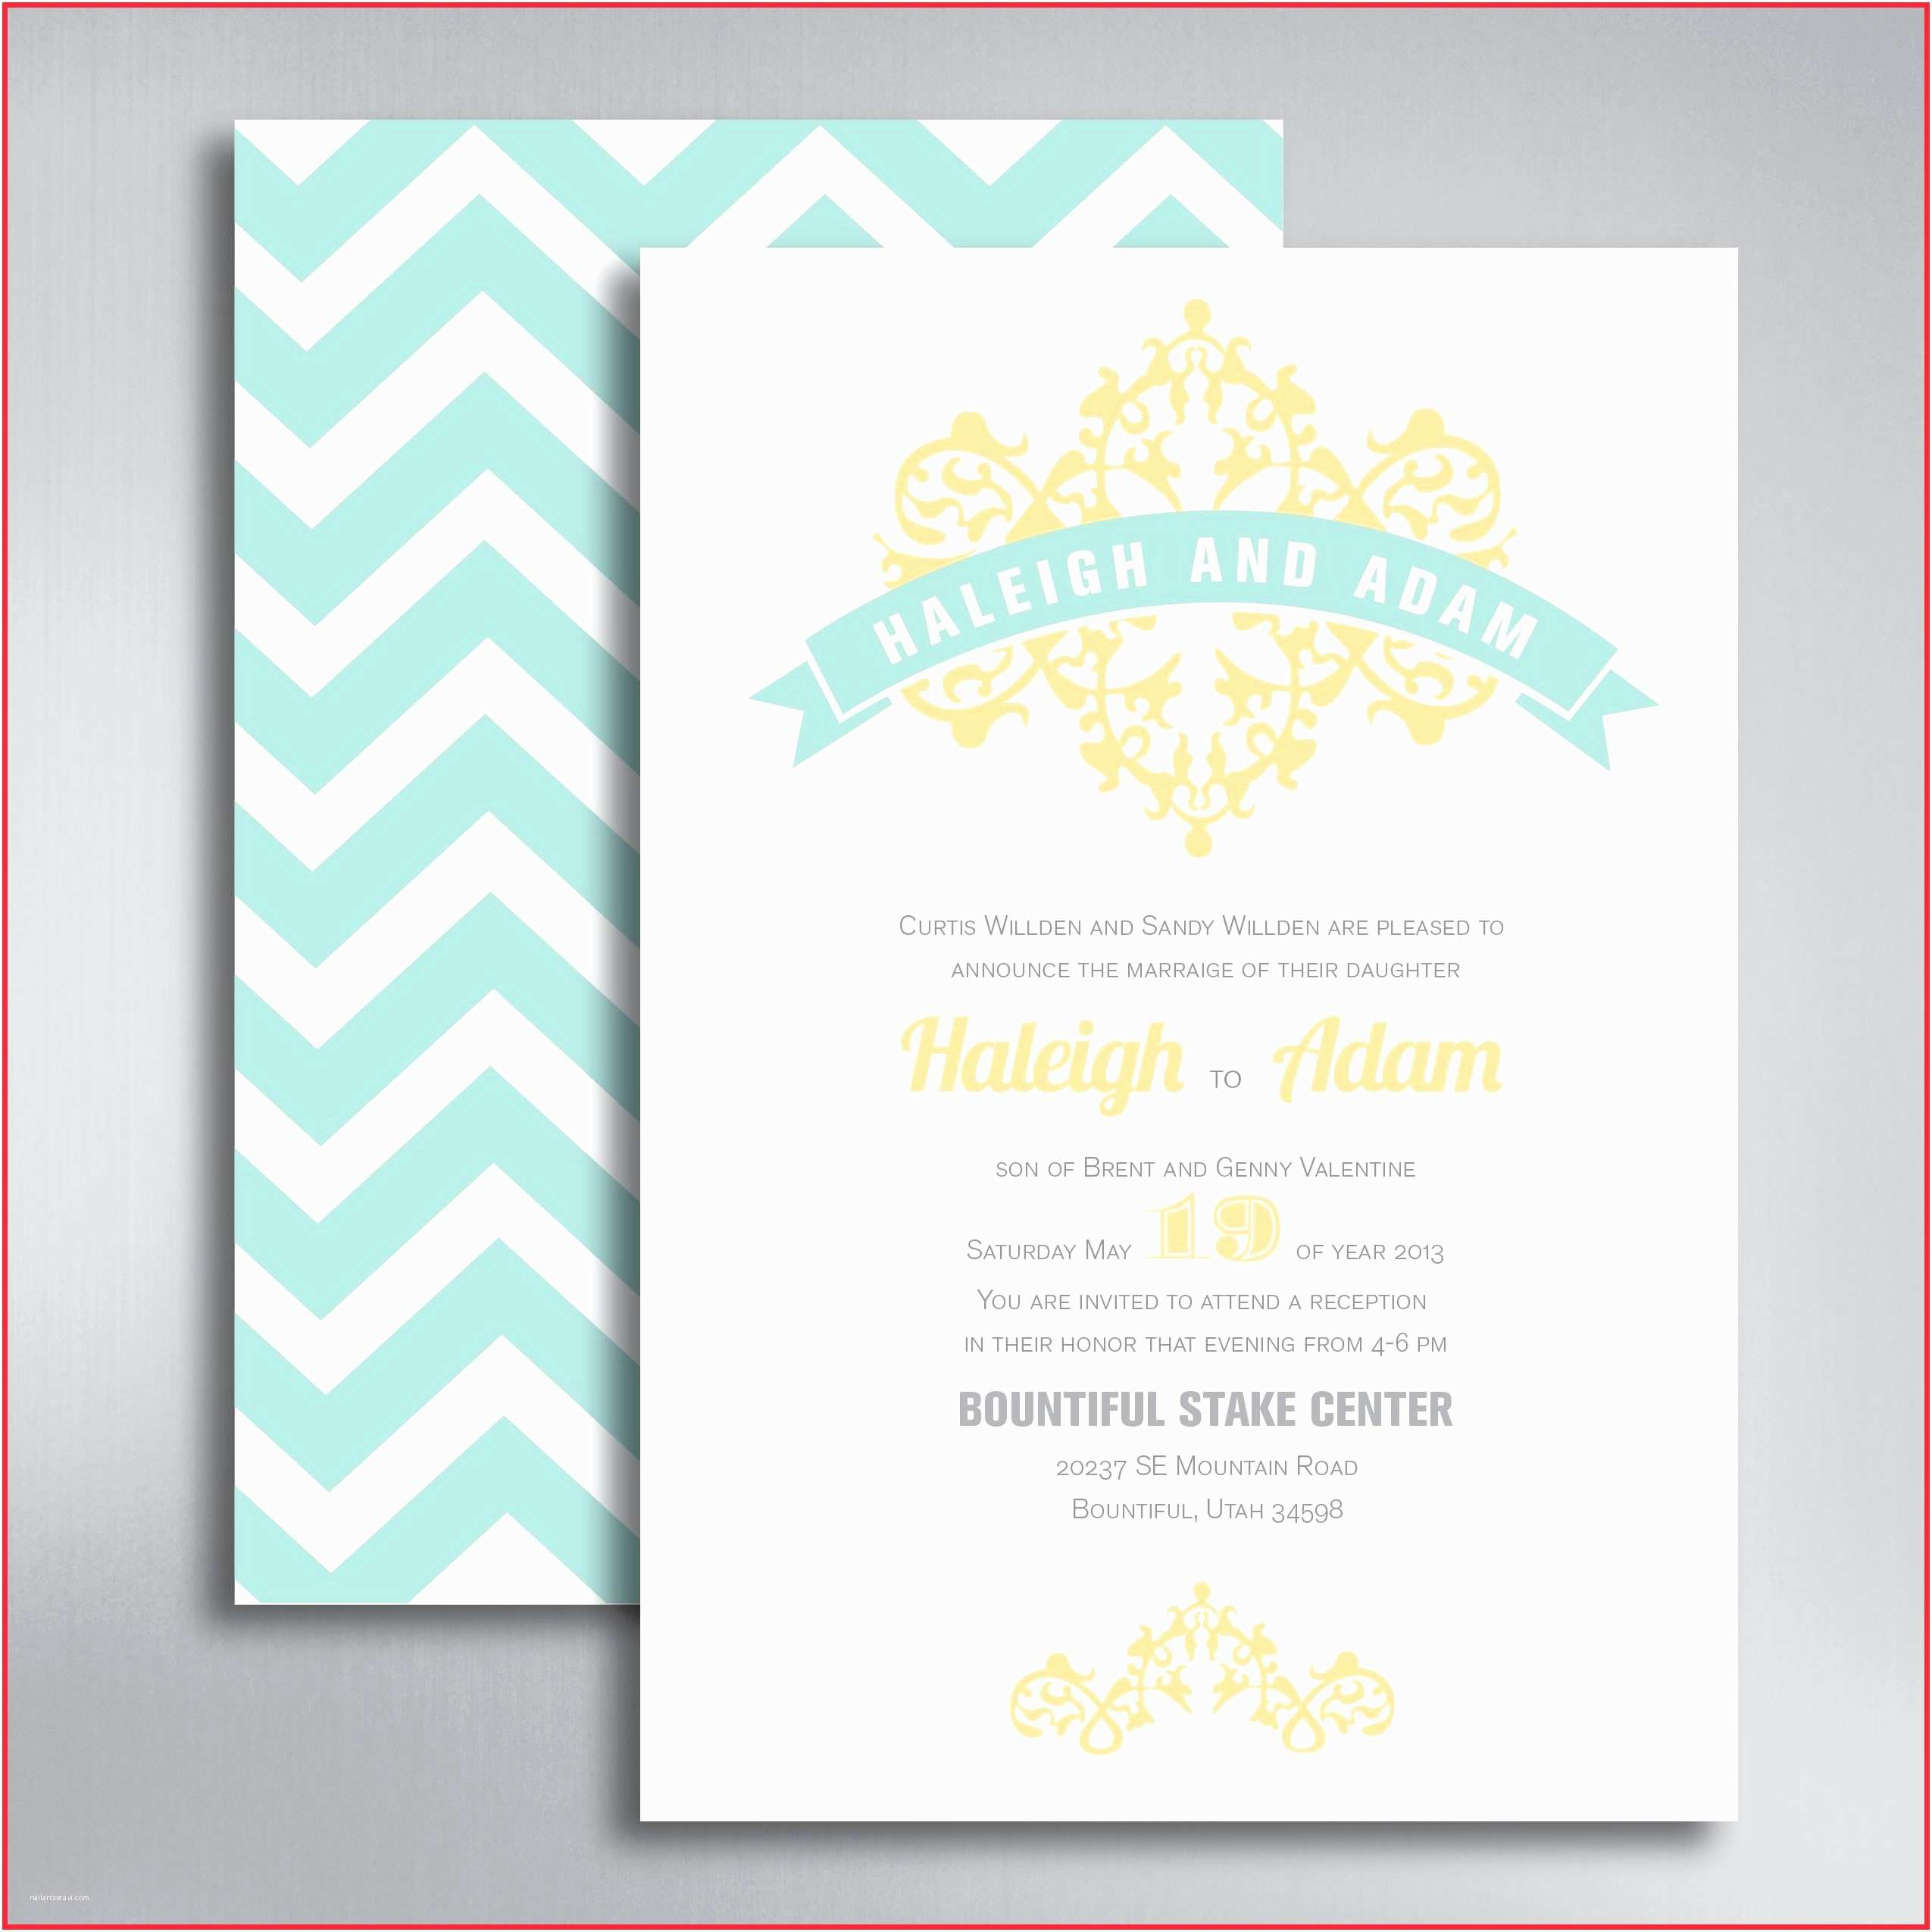 Best Place for Wedding Invitations Best Place to order Wedding Invitations Line Fresh